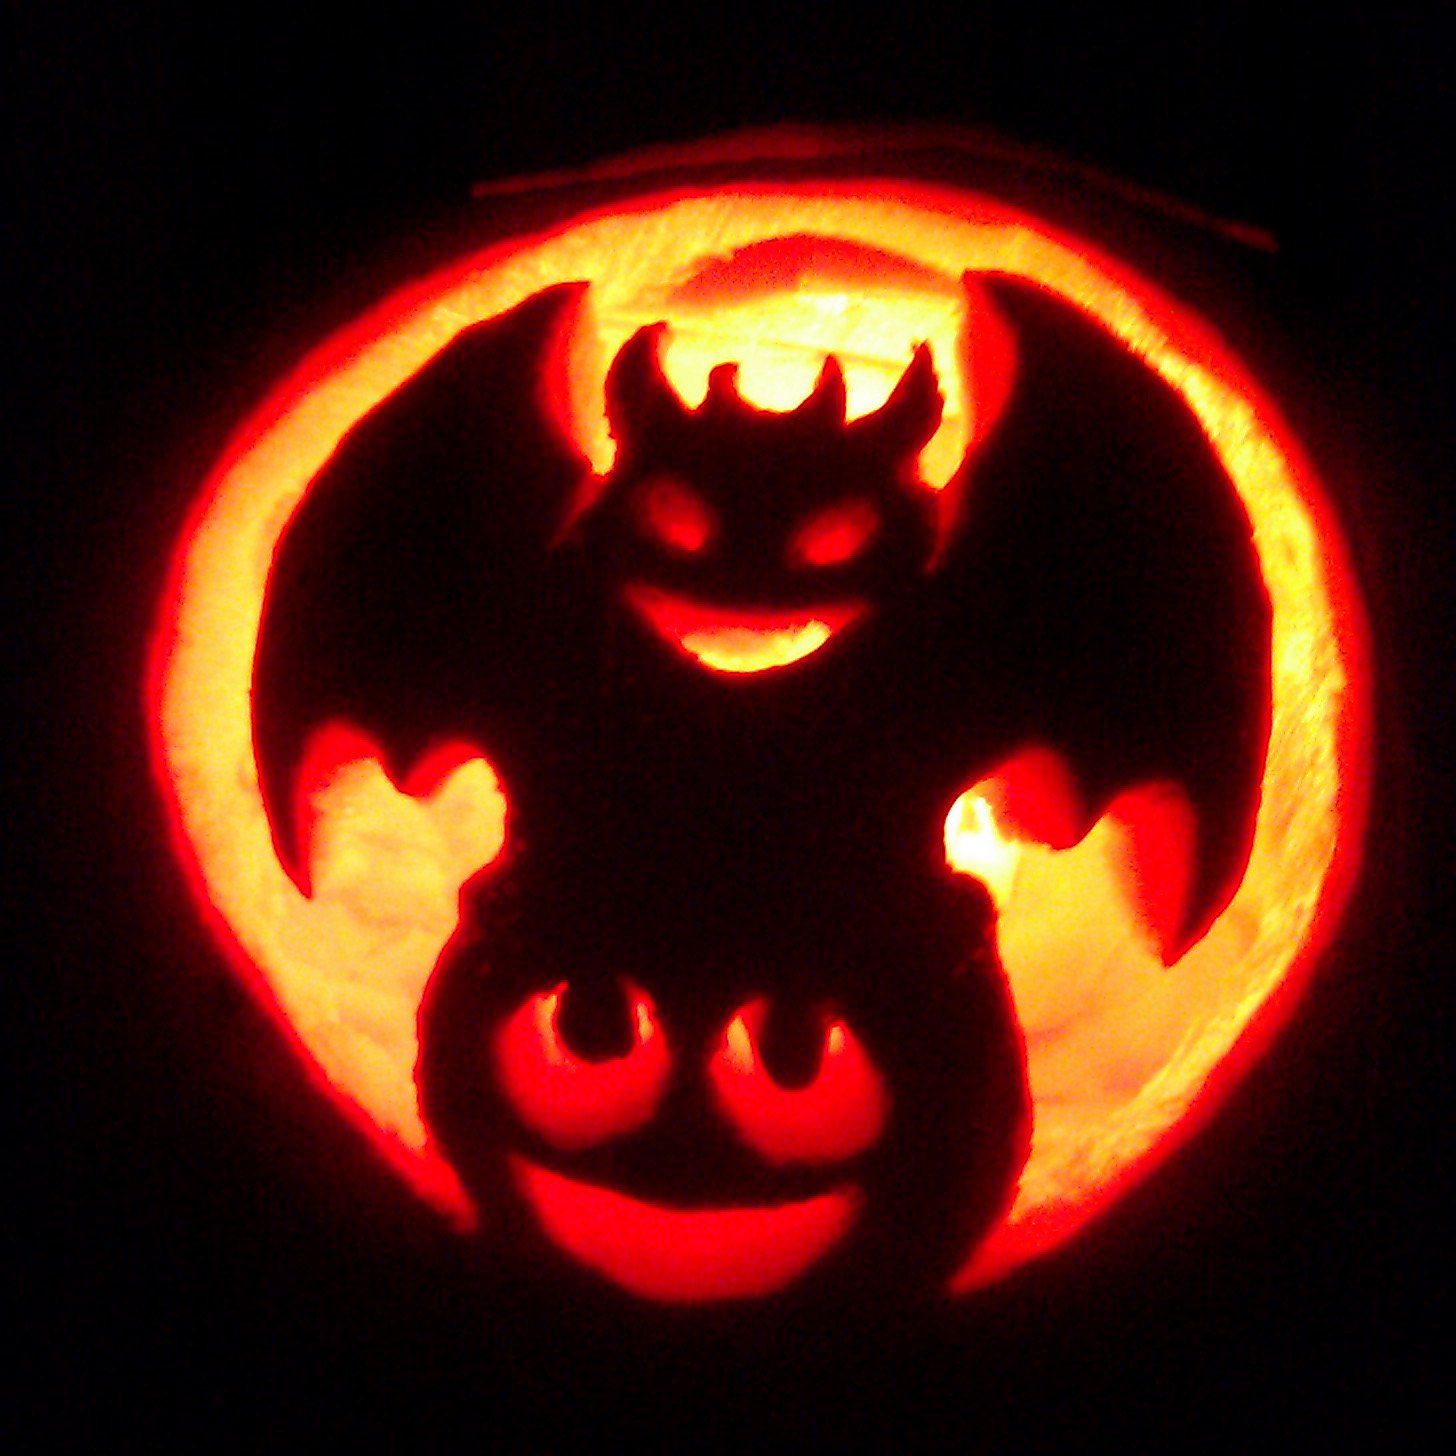 The gallery for gt easy halloween pumpkin ideas for kids for Ghost pumpkin carving ideas